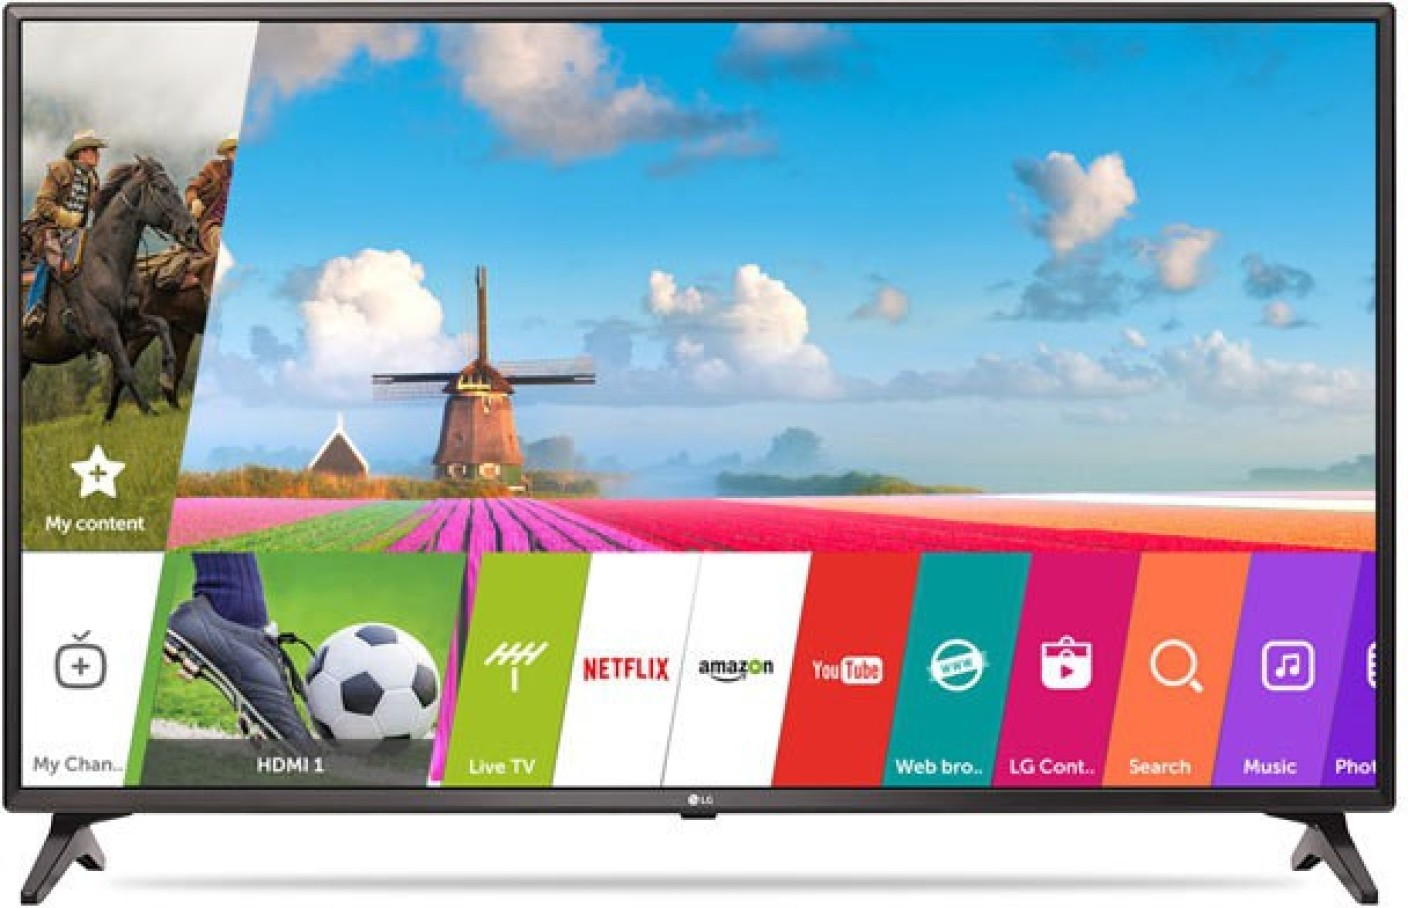 lg 108cm 43 inch full hd led smart tv online at best prices in india. Black Bedroom Furniture Sets. Home Design Ideas